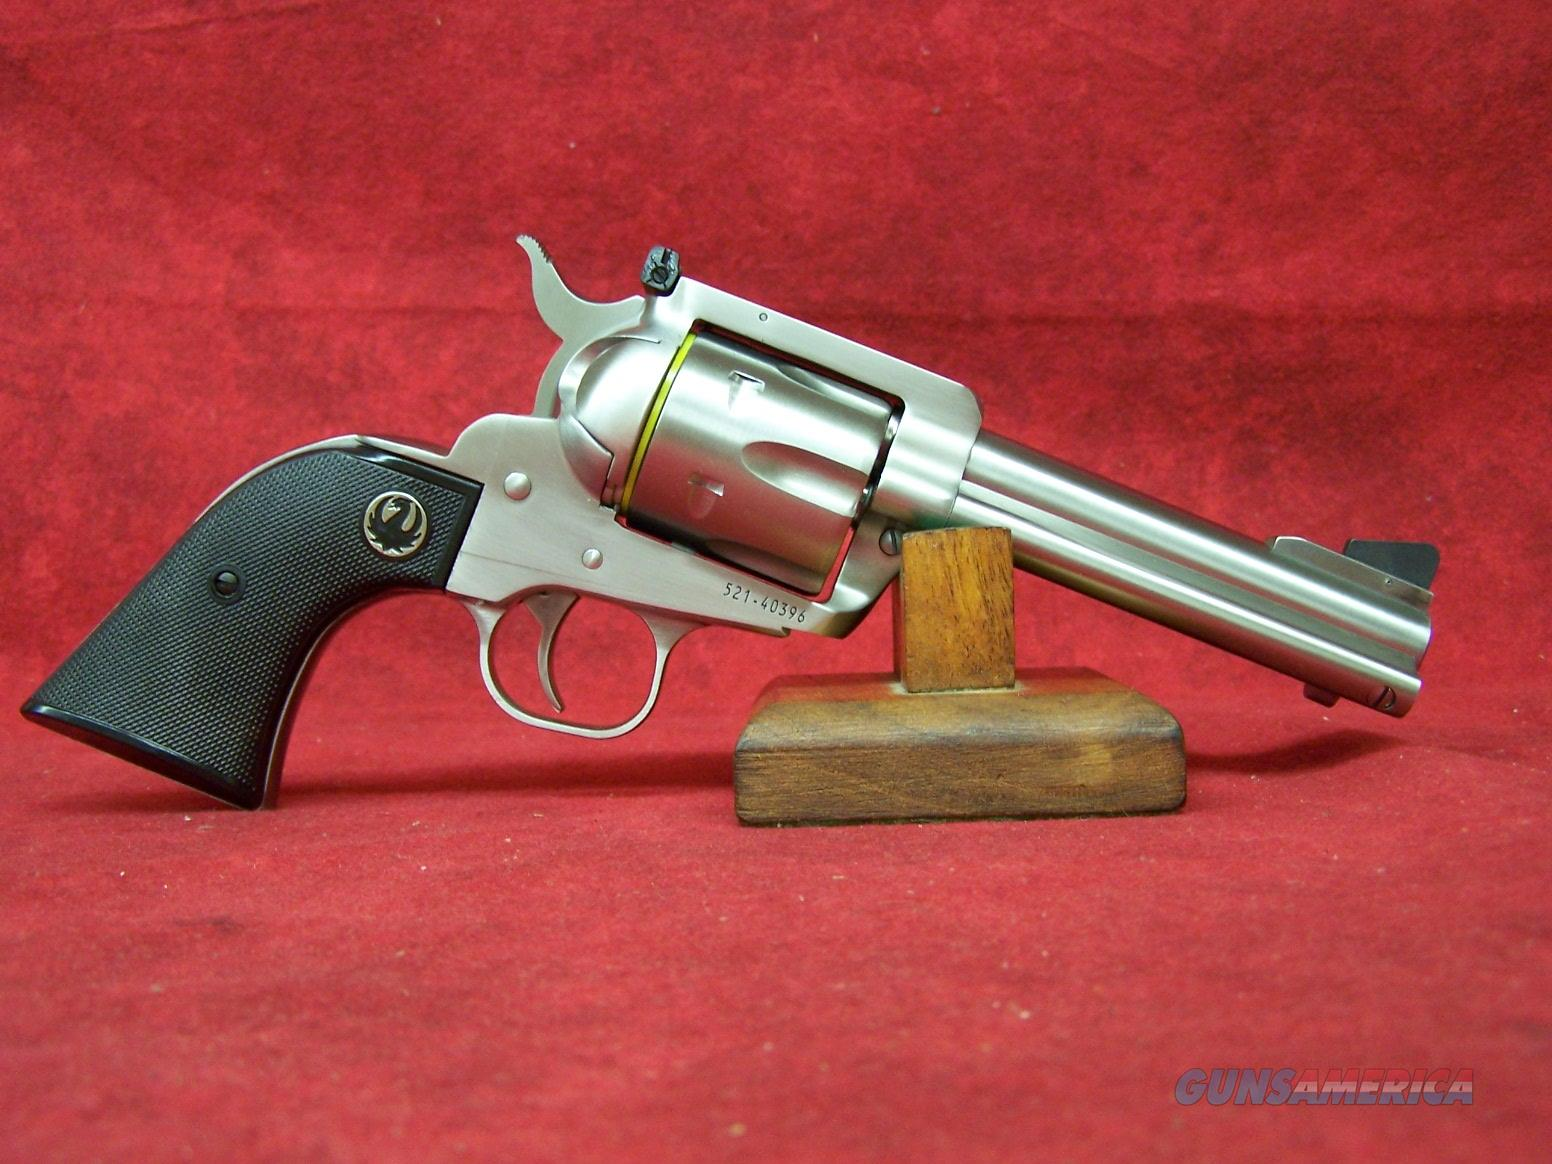 "Ruger Blackhawk 44 Smith & Wesson Special 4 5/8"" Barrel (05234)  Guns > Pistols > Ruger Single Action Revolvers > Blackhawk Type"